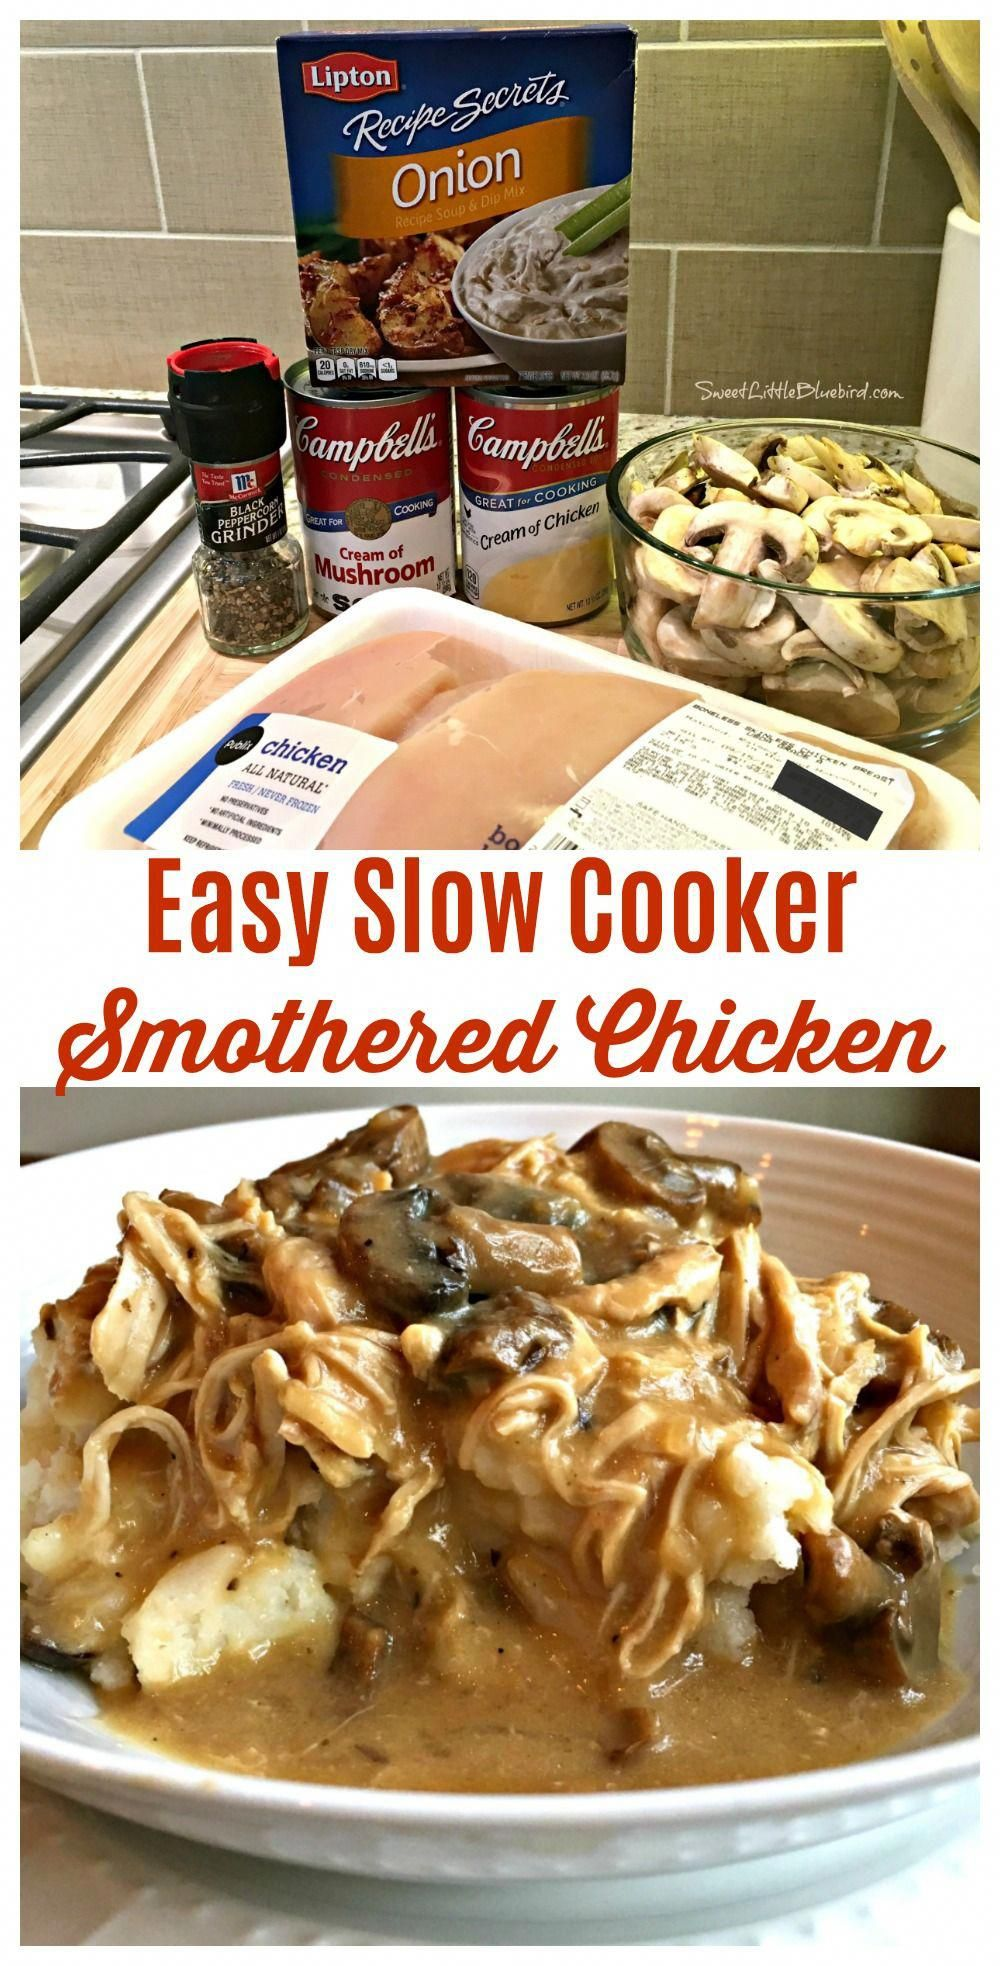 EASY SLOW COOKER SMOTHERED CHICKEN with GRAVY-  Comfort food that's simple to make, so good. With just a few ingredients and minutes to whip together, this simple and flavorful slow cooker smothered chicken recipe is a meal the whole family will love! Perfect for a busy day...let your slow cooker do most of the work!.